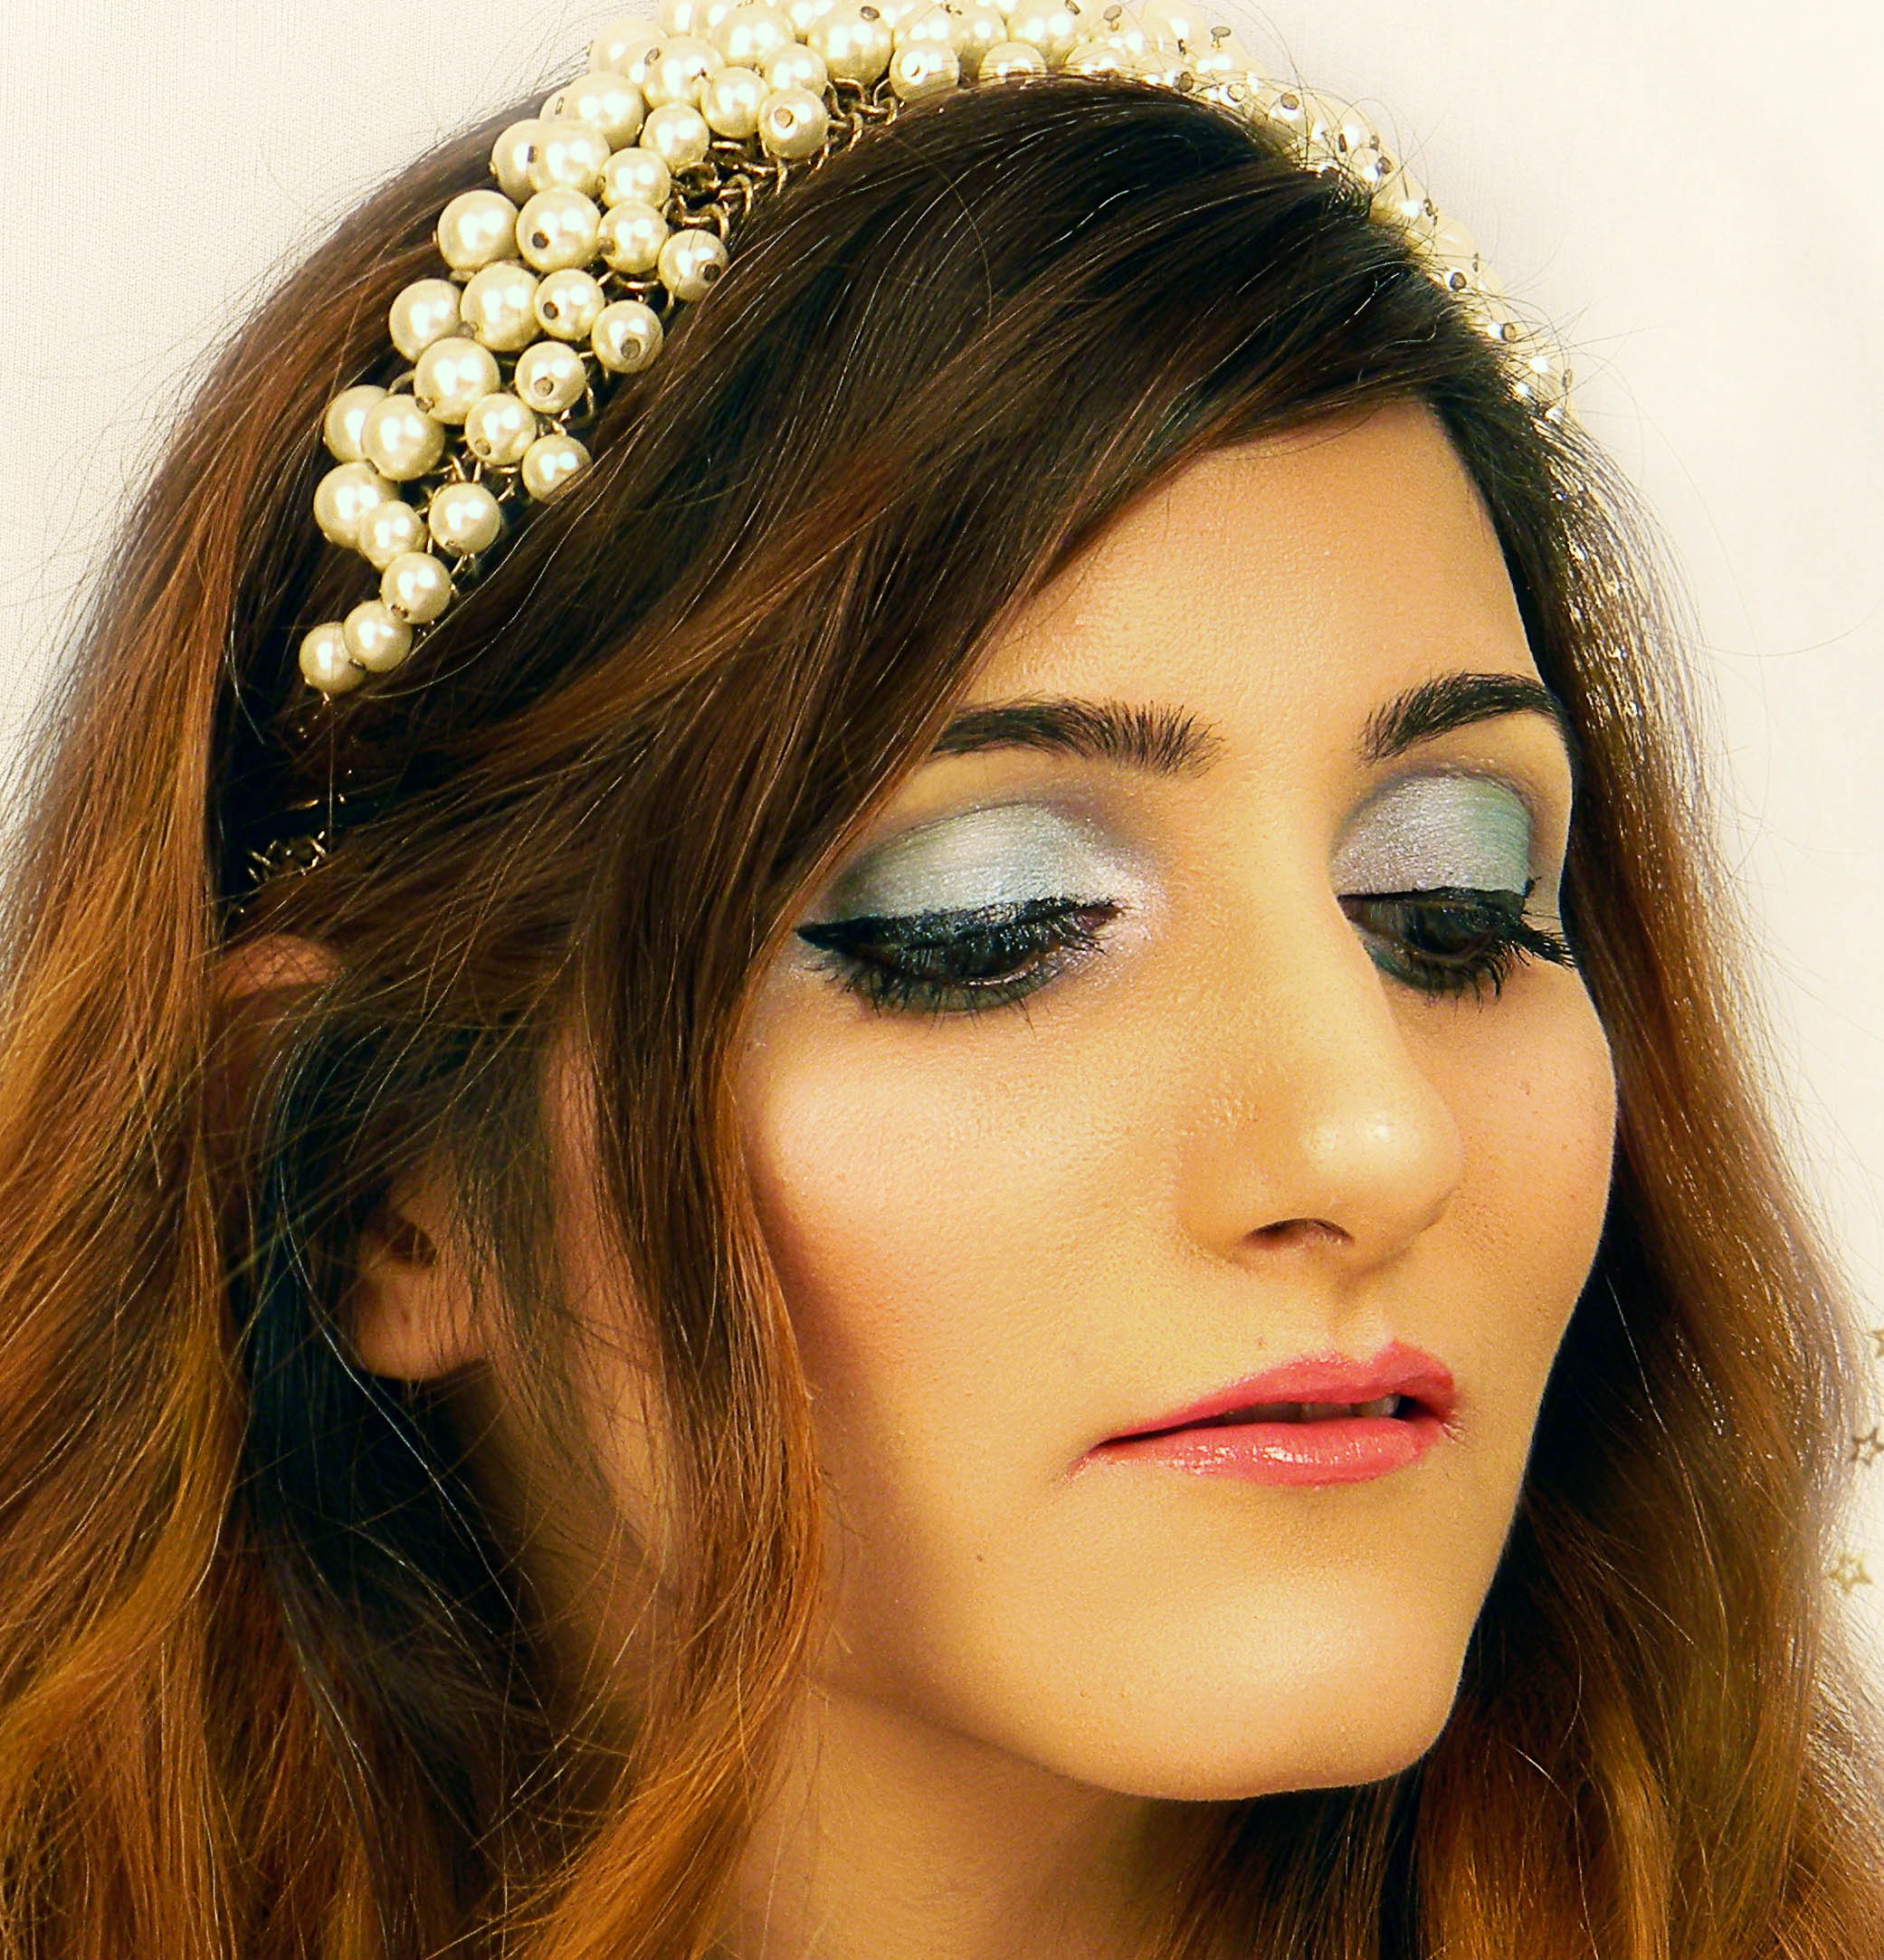 shilpa-ahuja-fairy-kei-makeup-trend-kawaii-eyeshadow-look